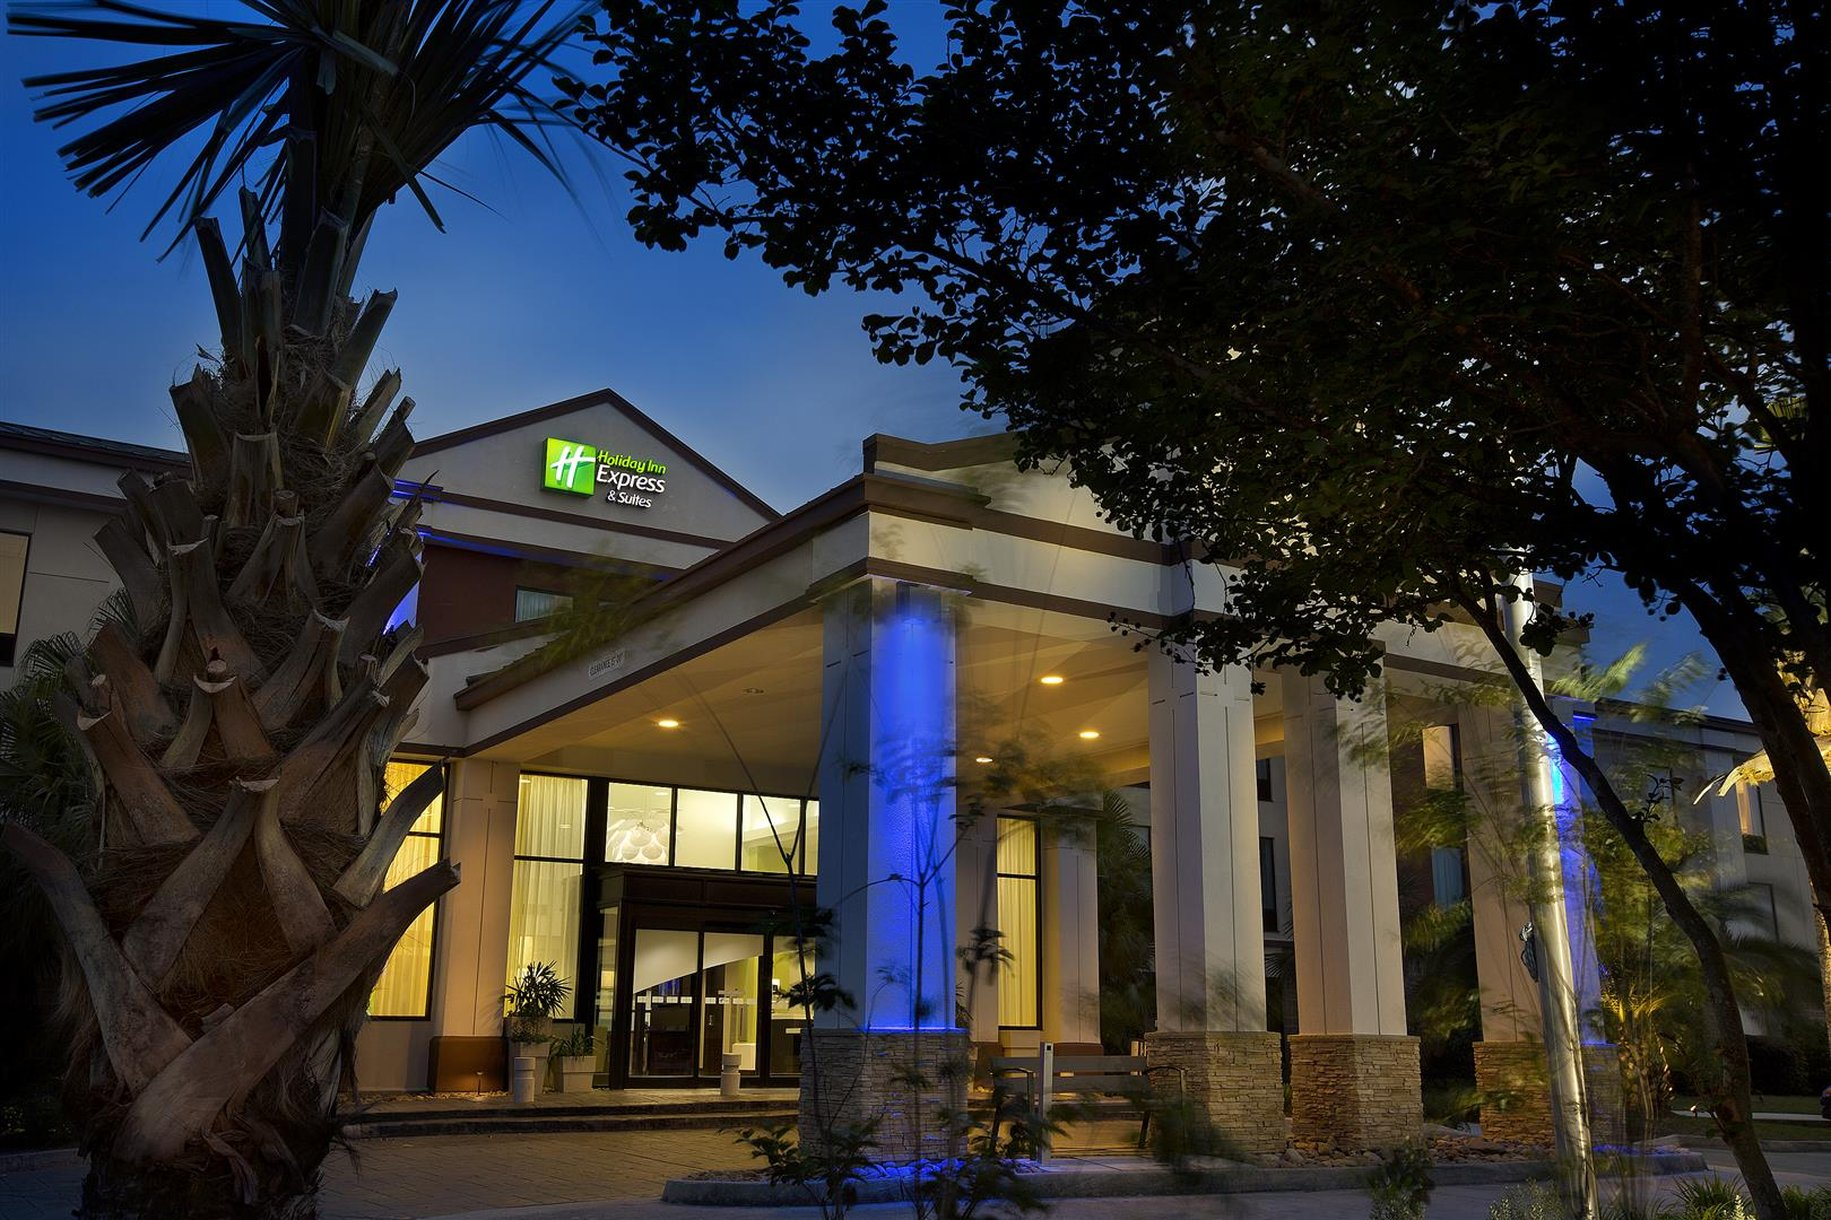 Holiday Inn Express & Suites Airport S